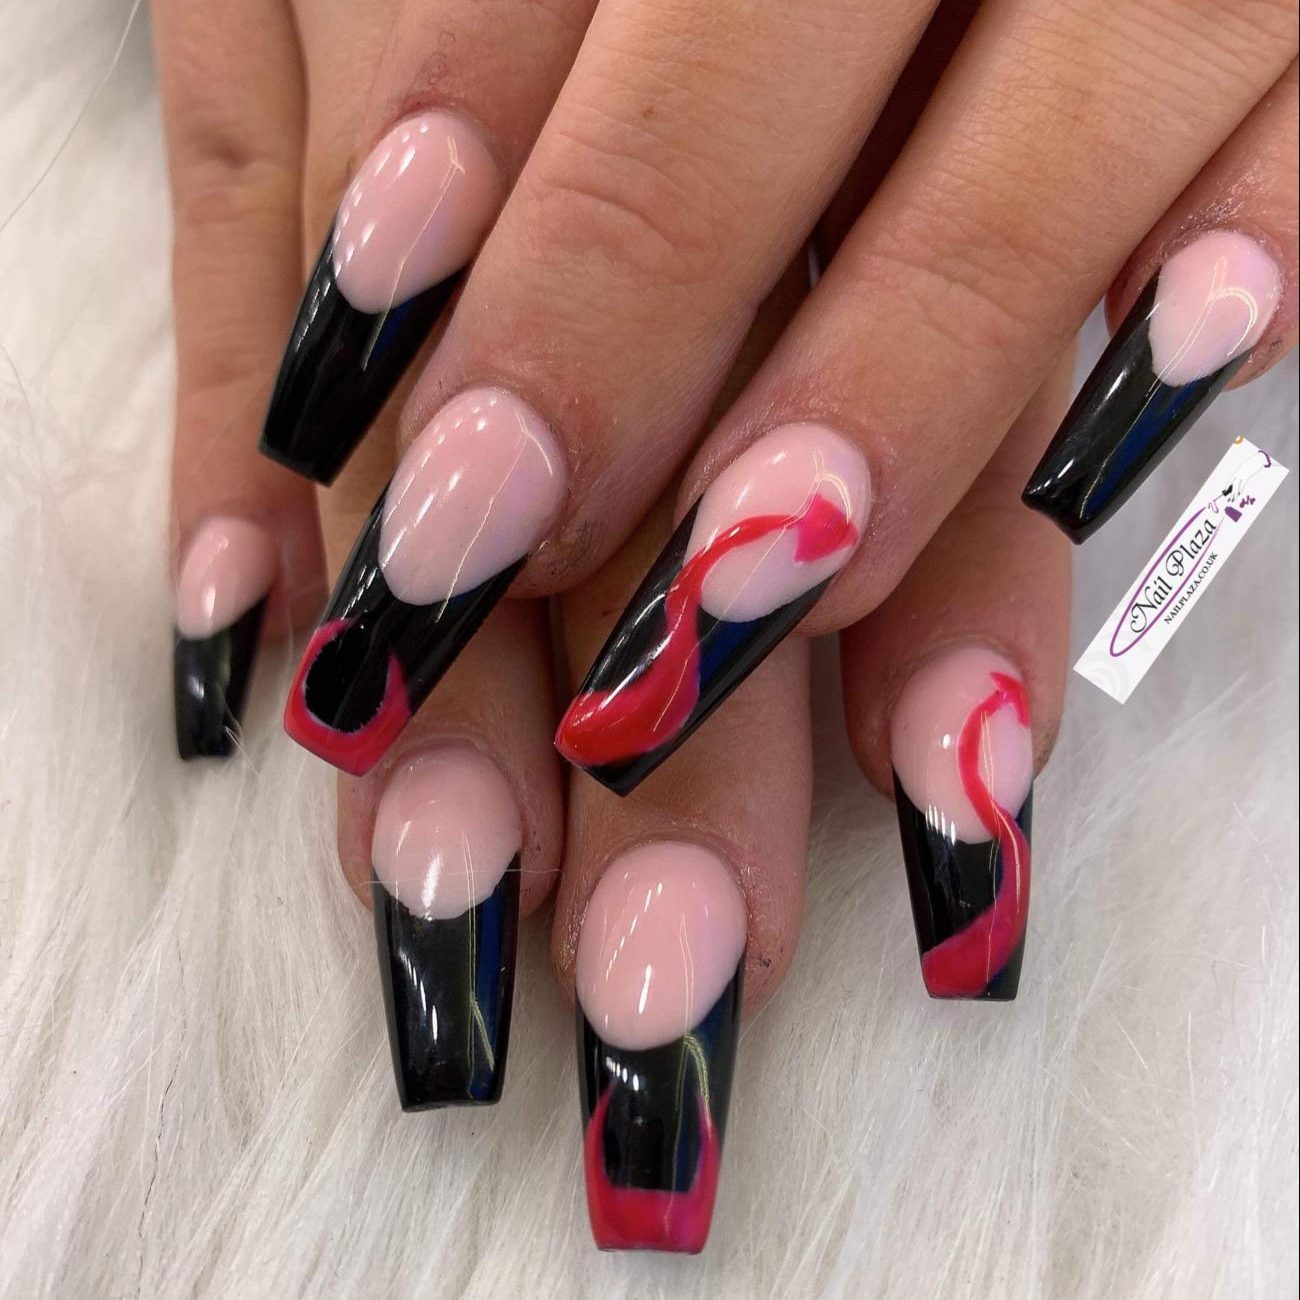 nail-plaza-twickenham-nail-design-061120-7